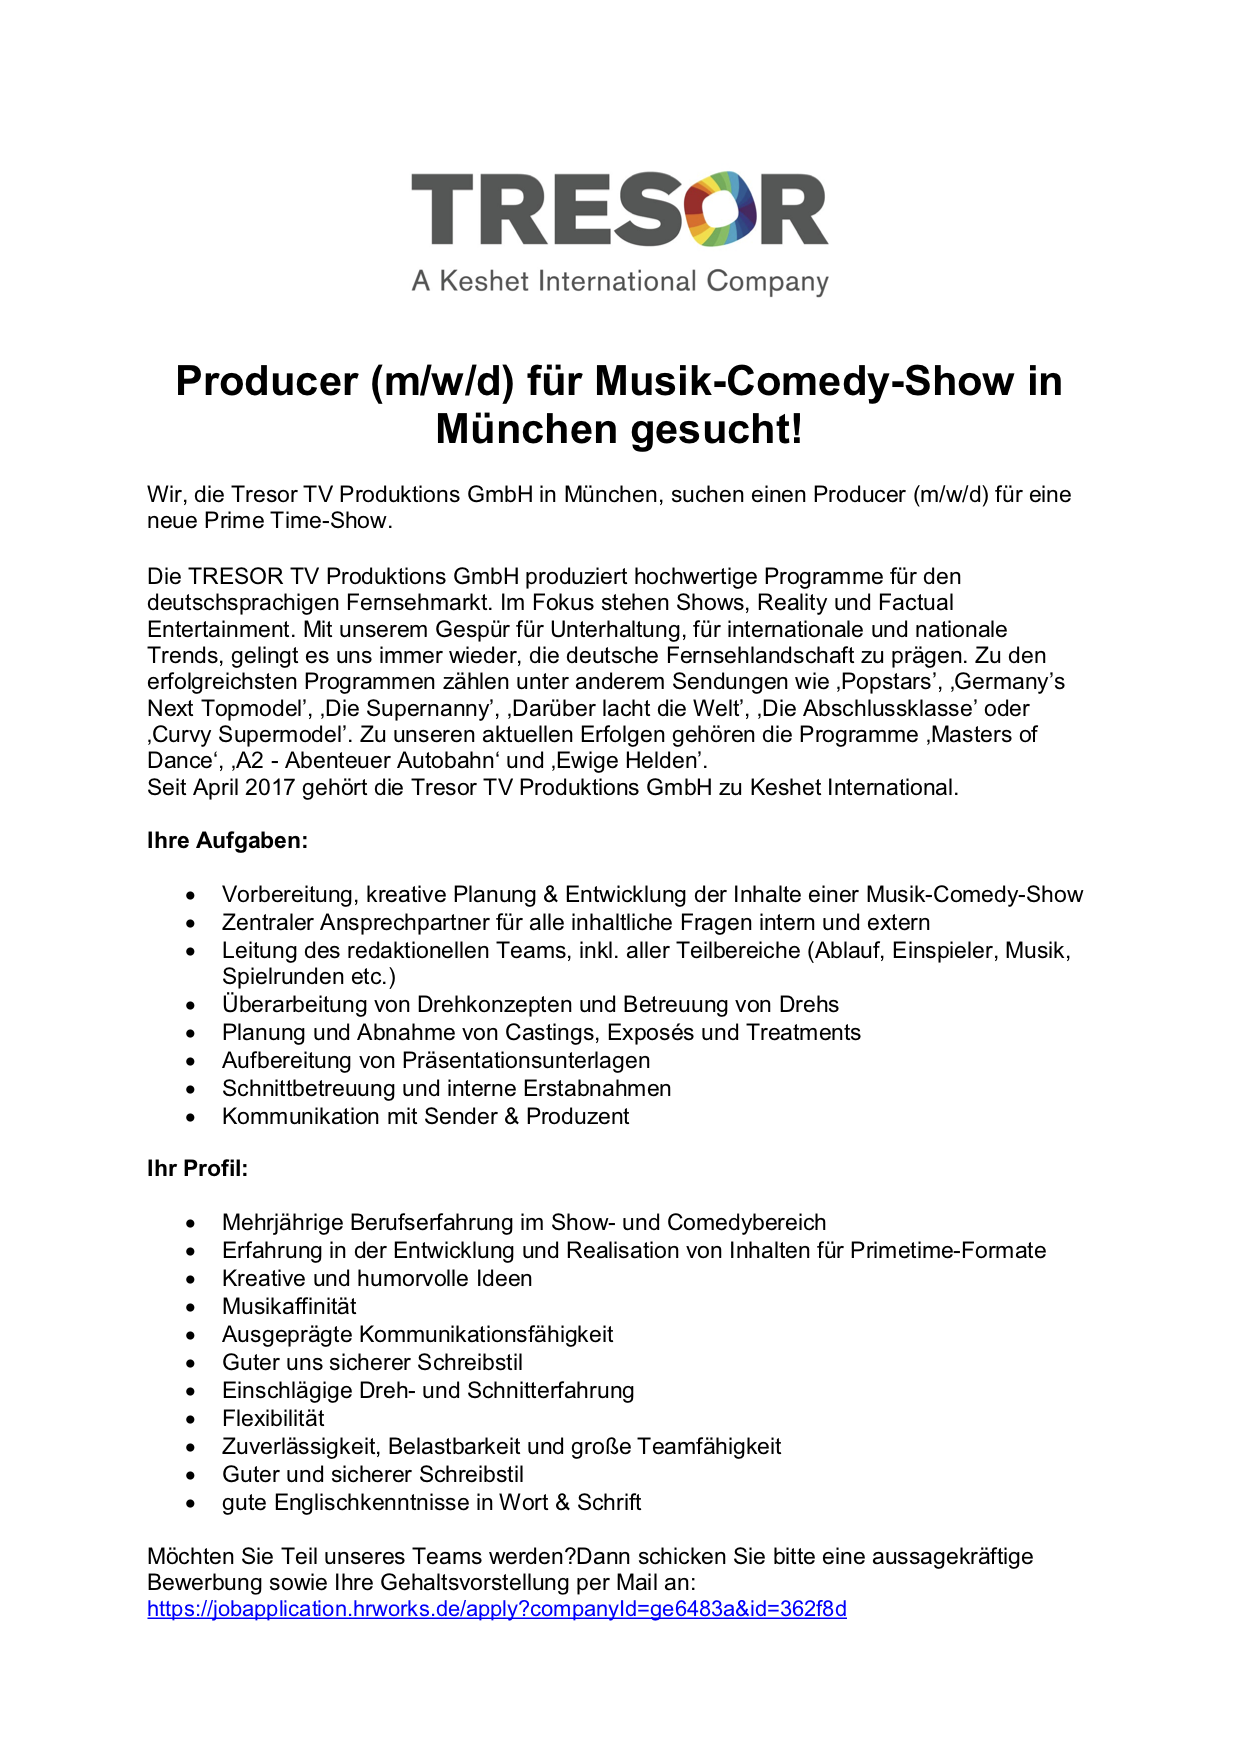 Producer (m/w/d) Musik-Comedy-Show